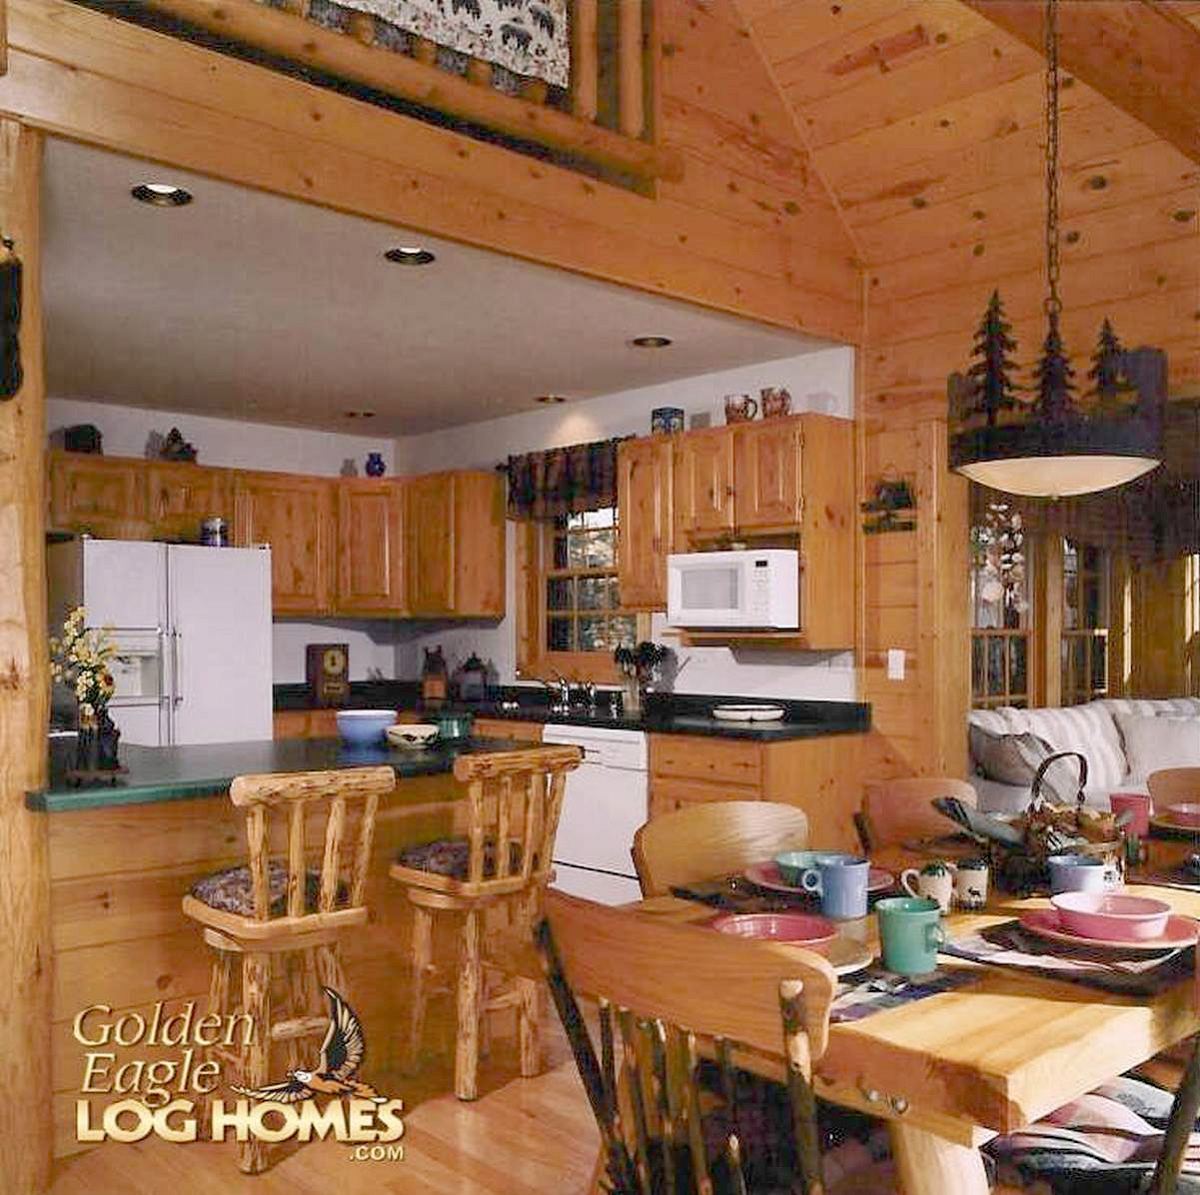 Dining Area In Kitchen: Golden Eagle Log And Timber Homes: Log Home / Cabin